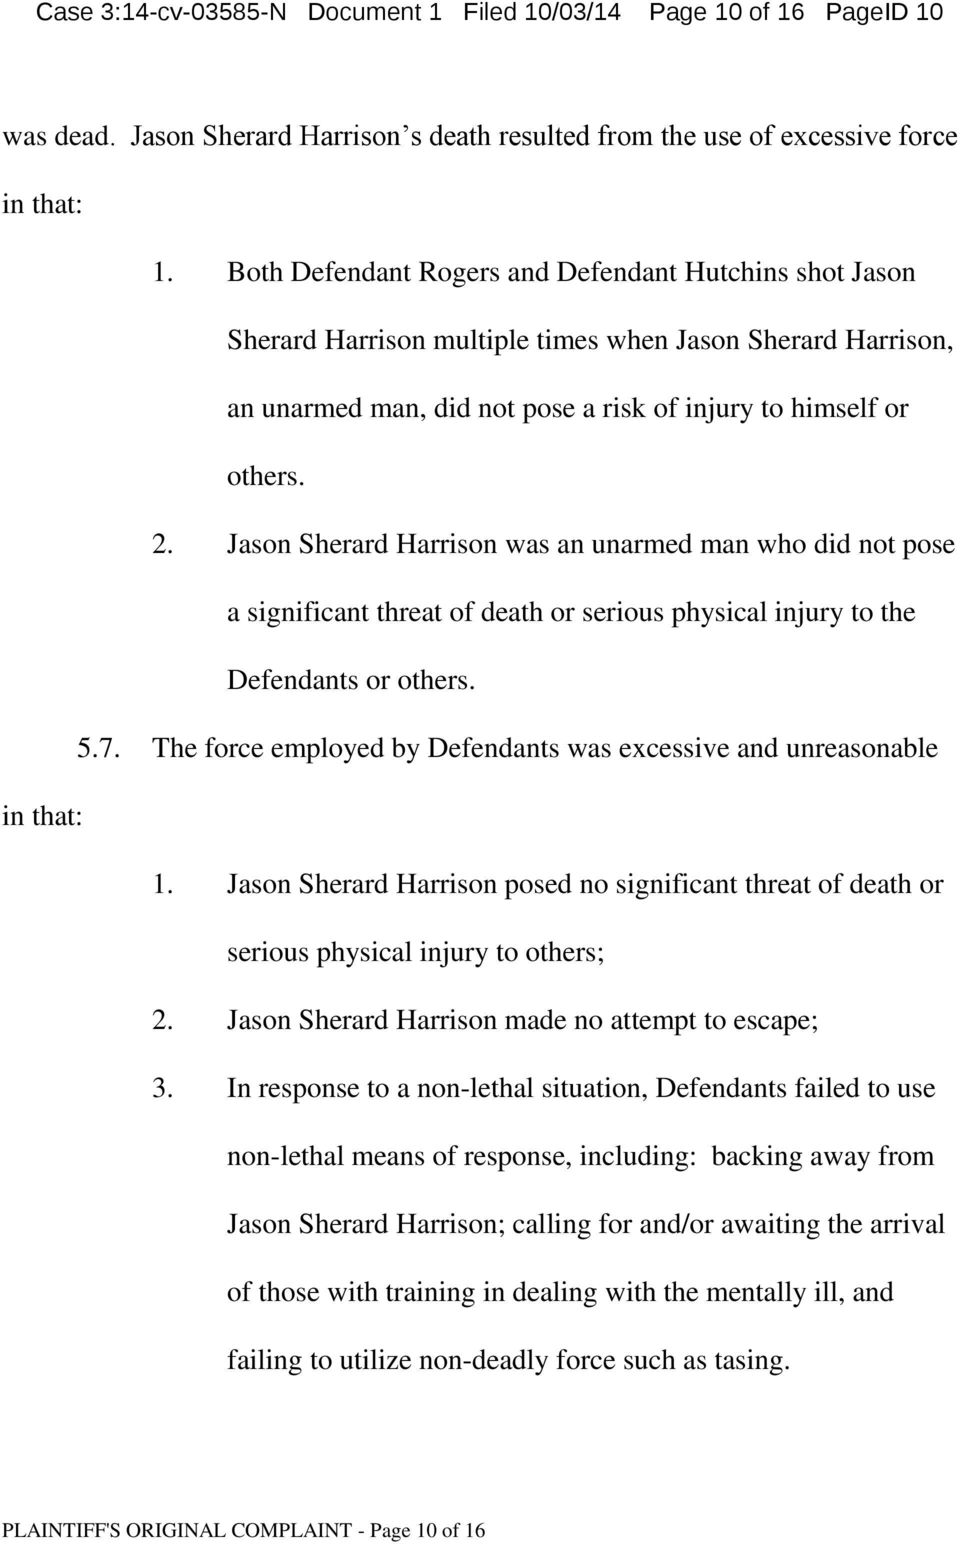 Jason Sherard Harrison was an unarmed man who did not pose a significant threat of death or serious physical injury to the Defendants or others. 5.7.